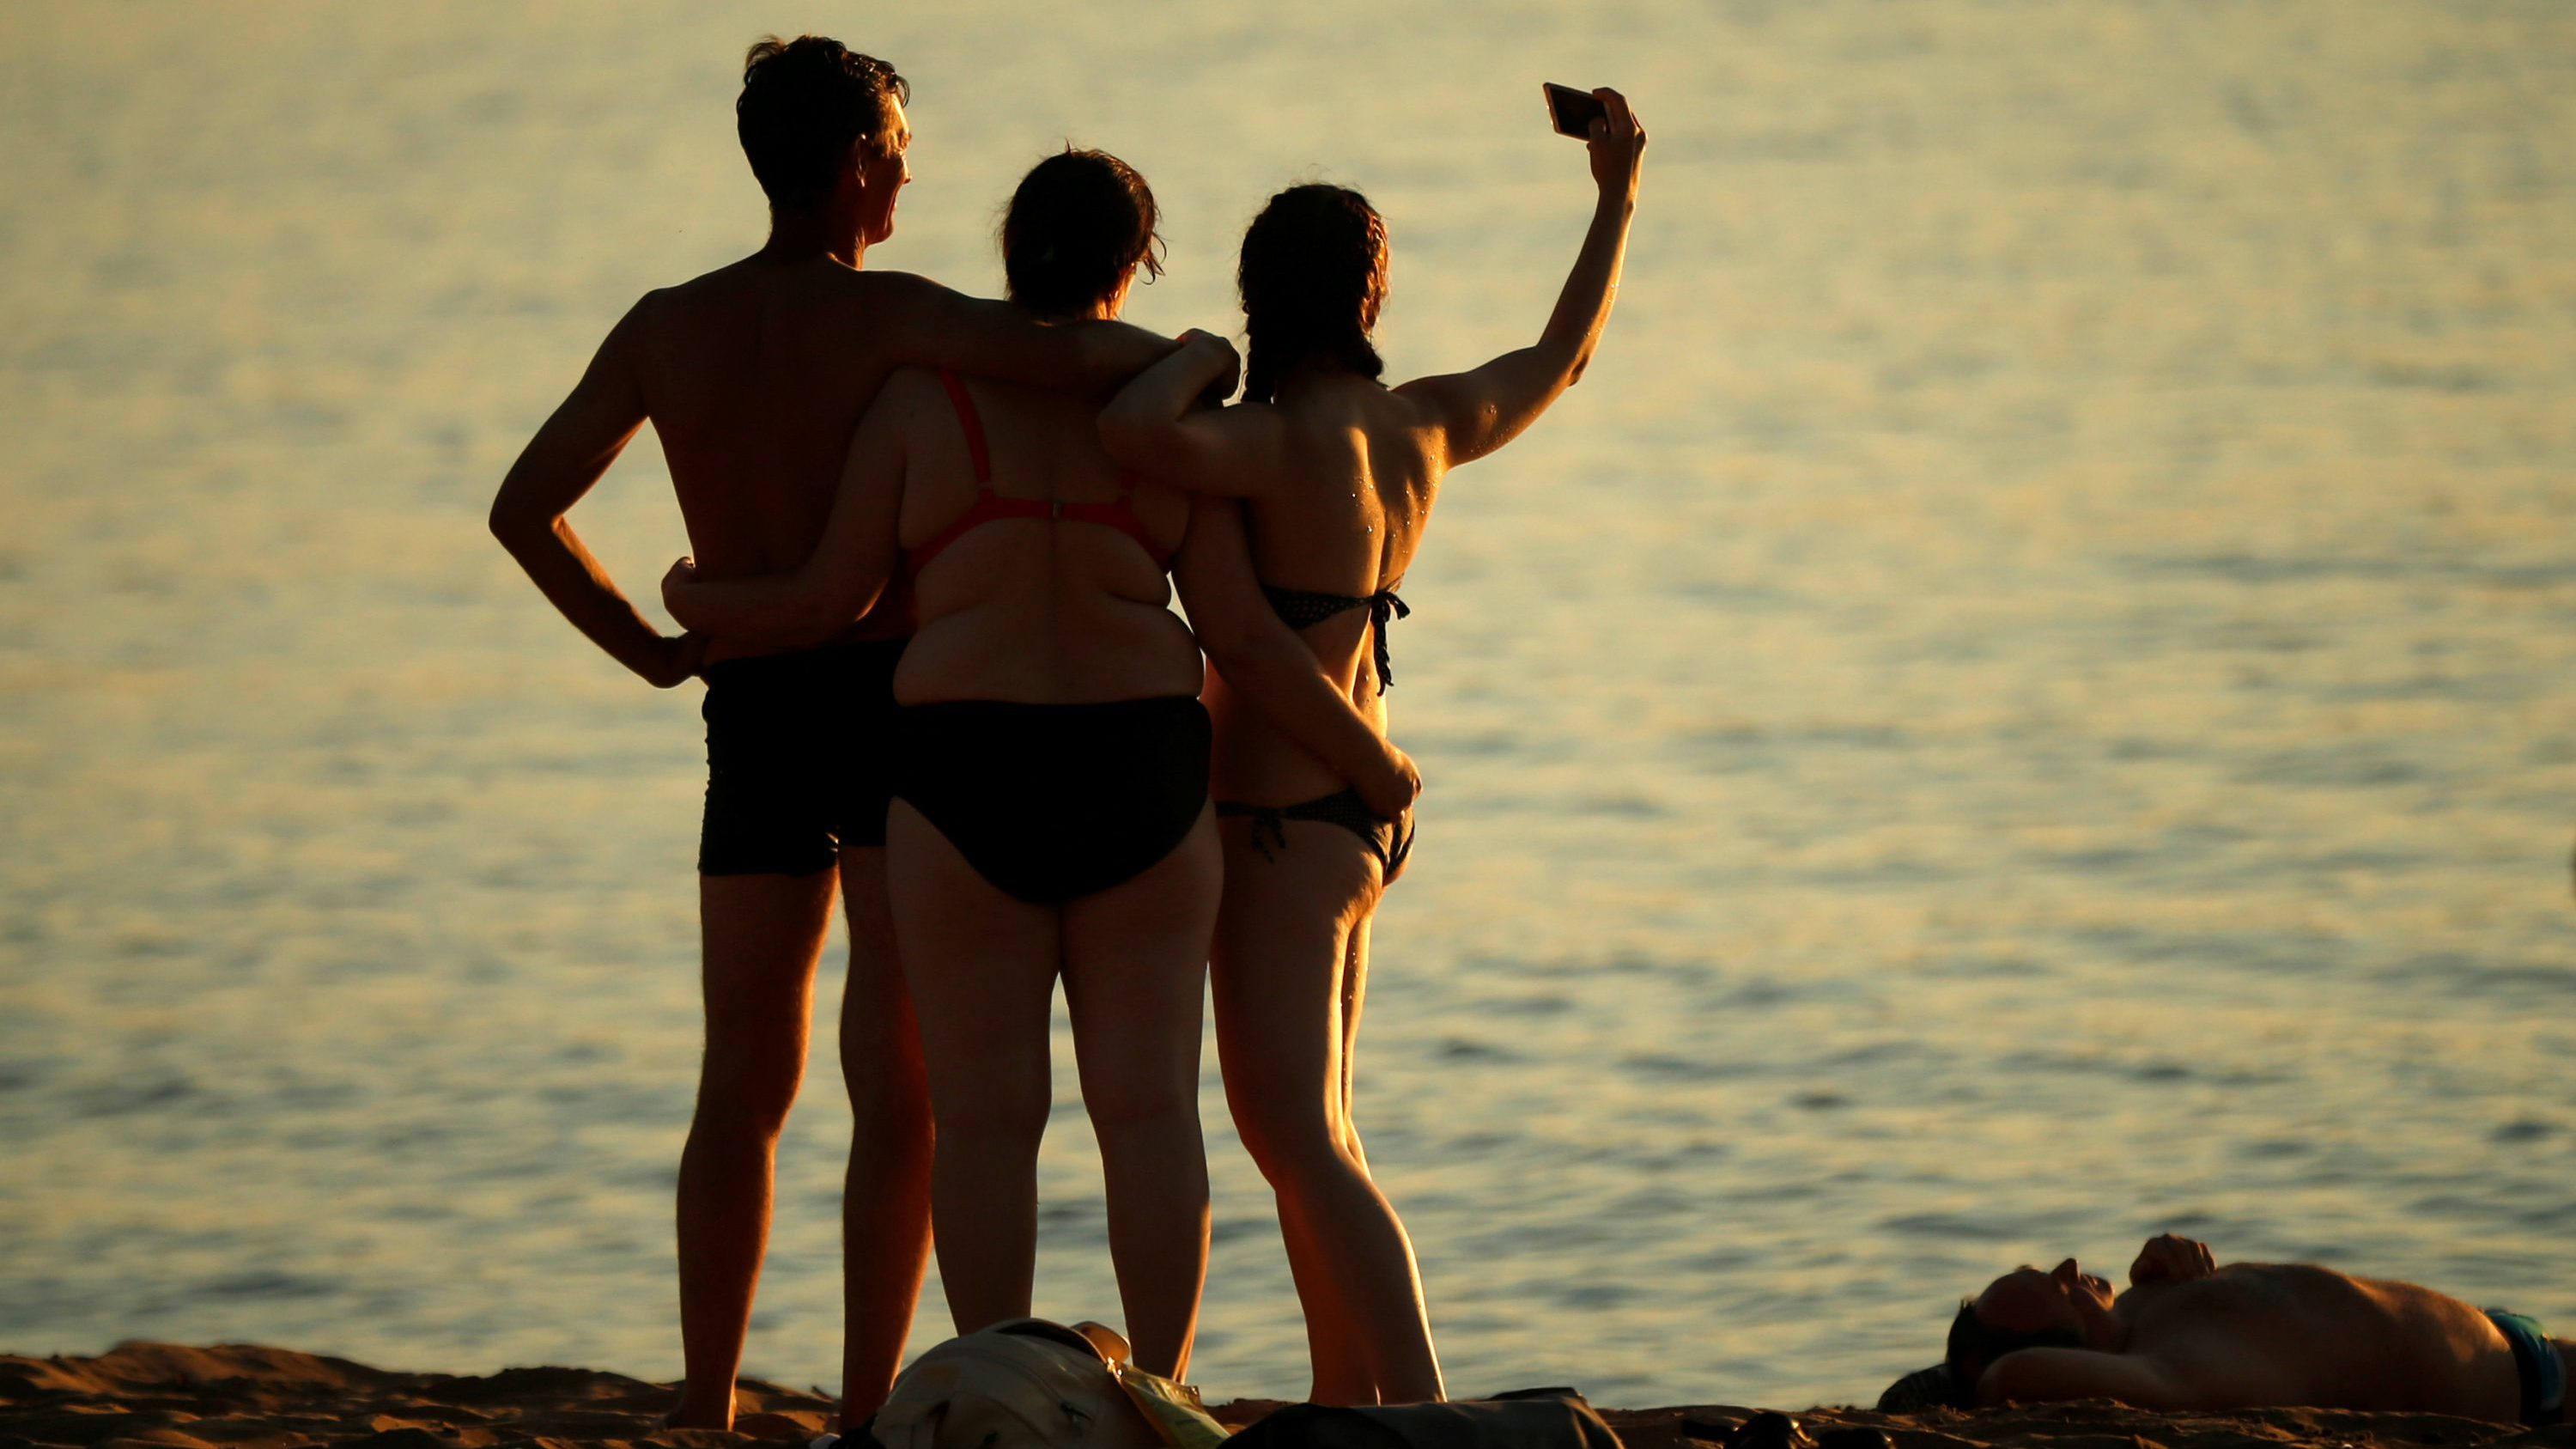 People take a selfie during sunset on the beach along the Volga river in Samara, Russia, July 18, 2017.